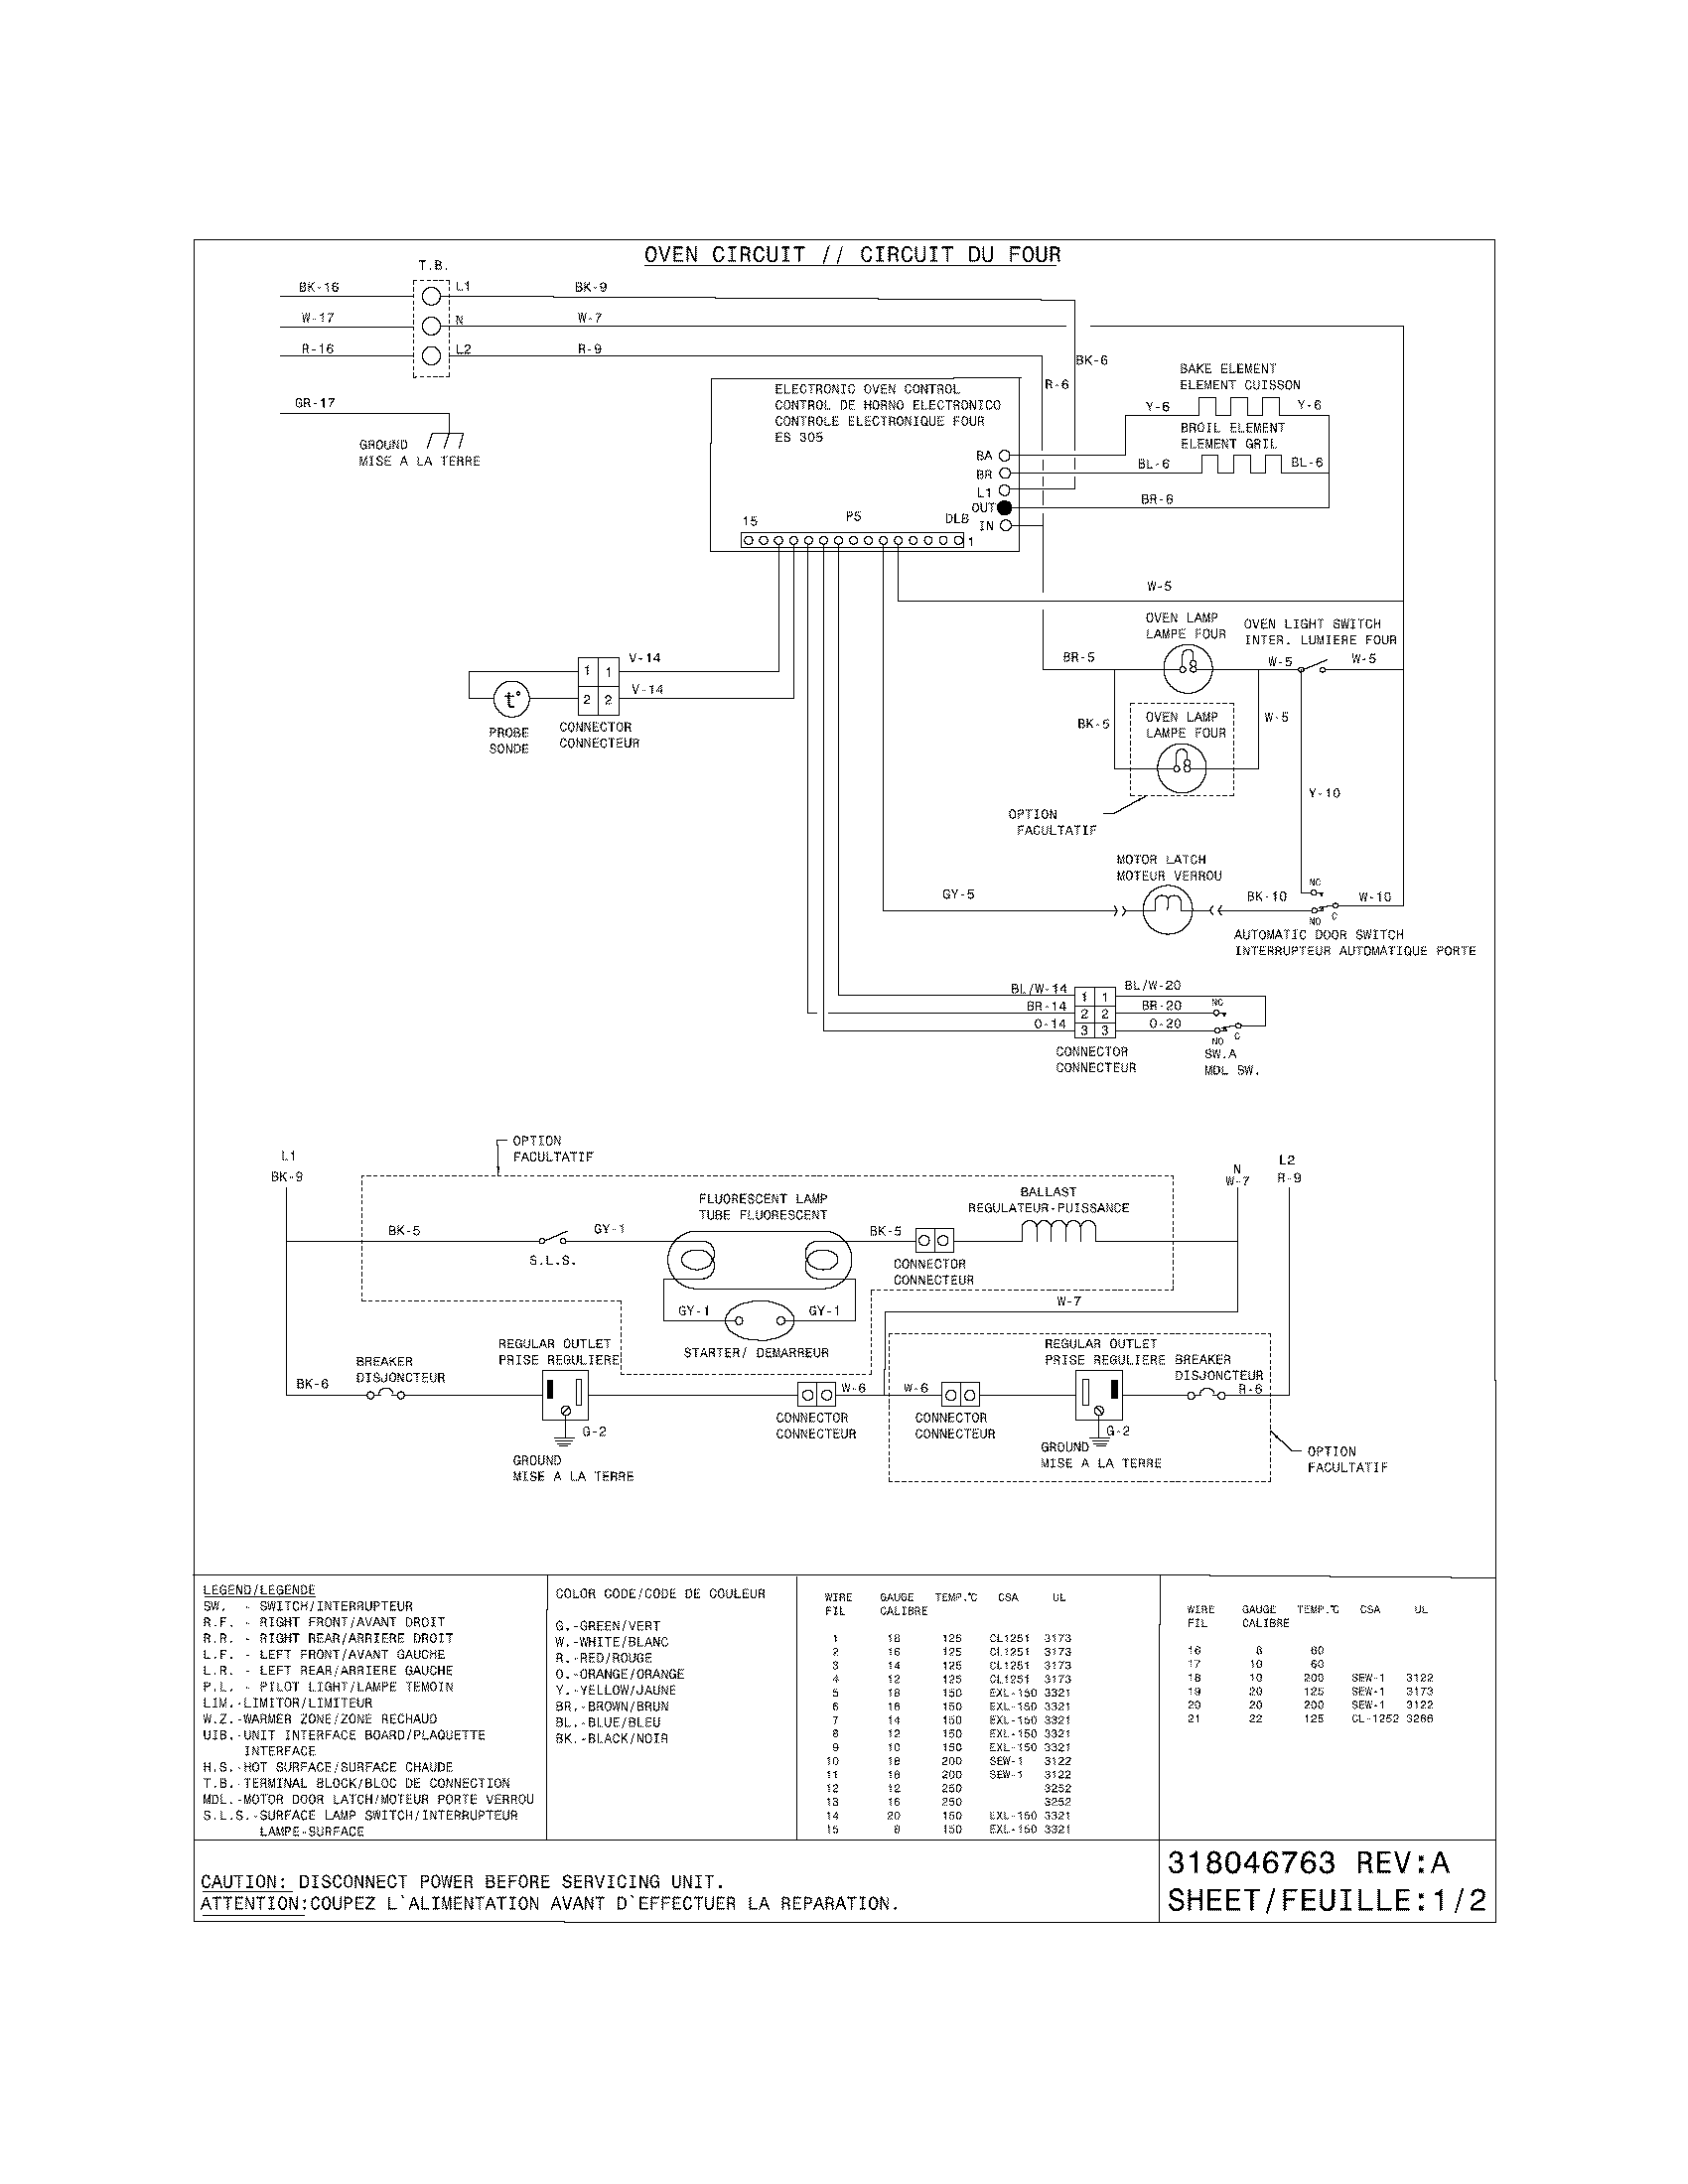 Wiring Schematic For Maytag Dryer Furthermore Ge Dryer Wiring Diagram